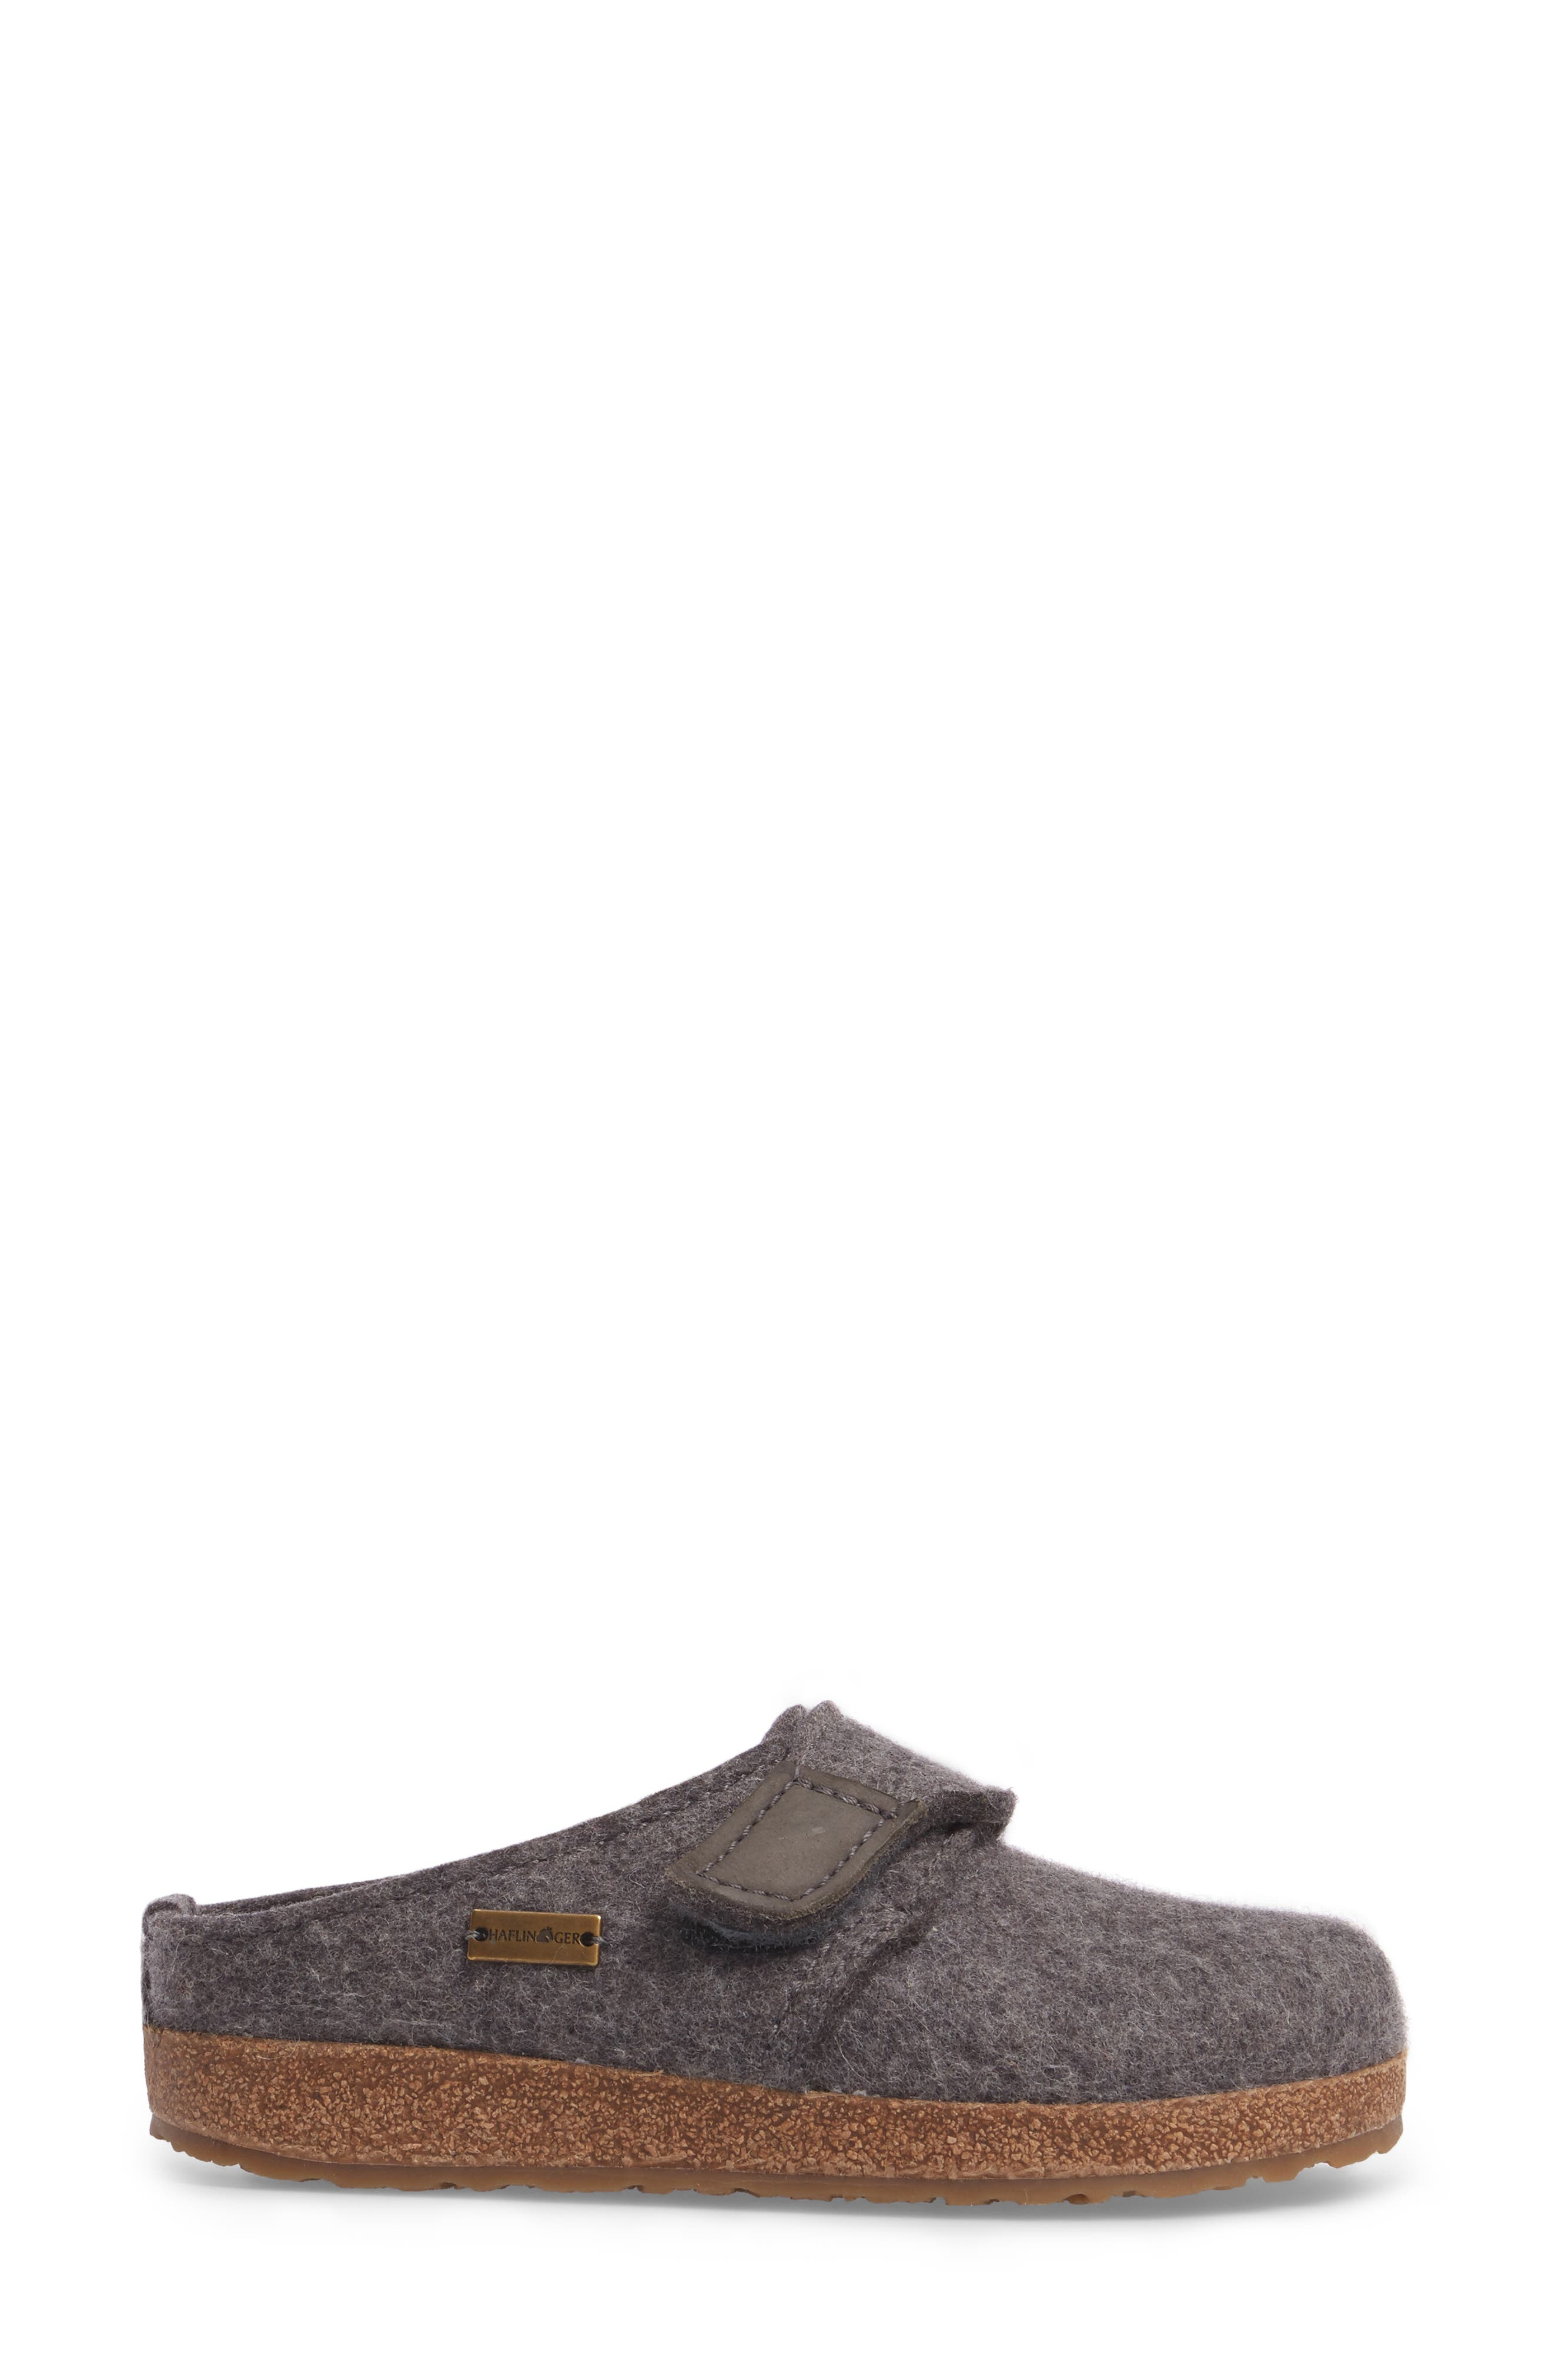 Grizzly Journey Clog Slipper,                             Alternate thumbnail 5, color,